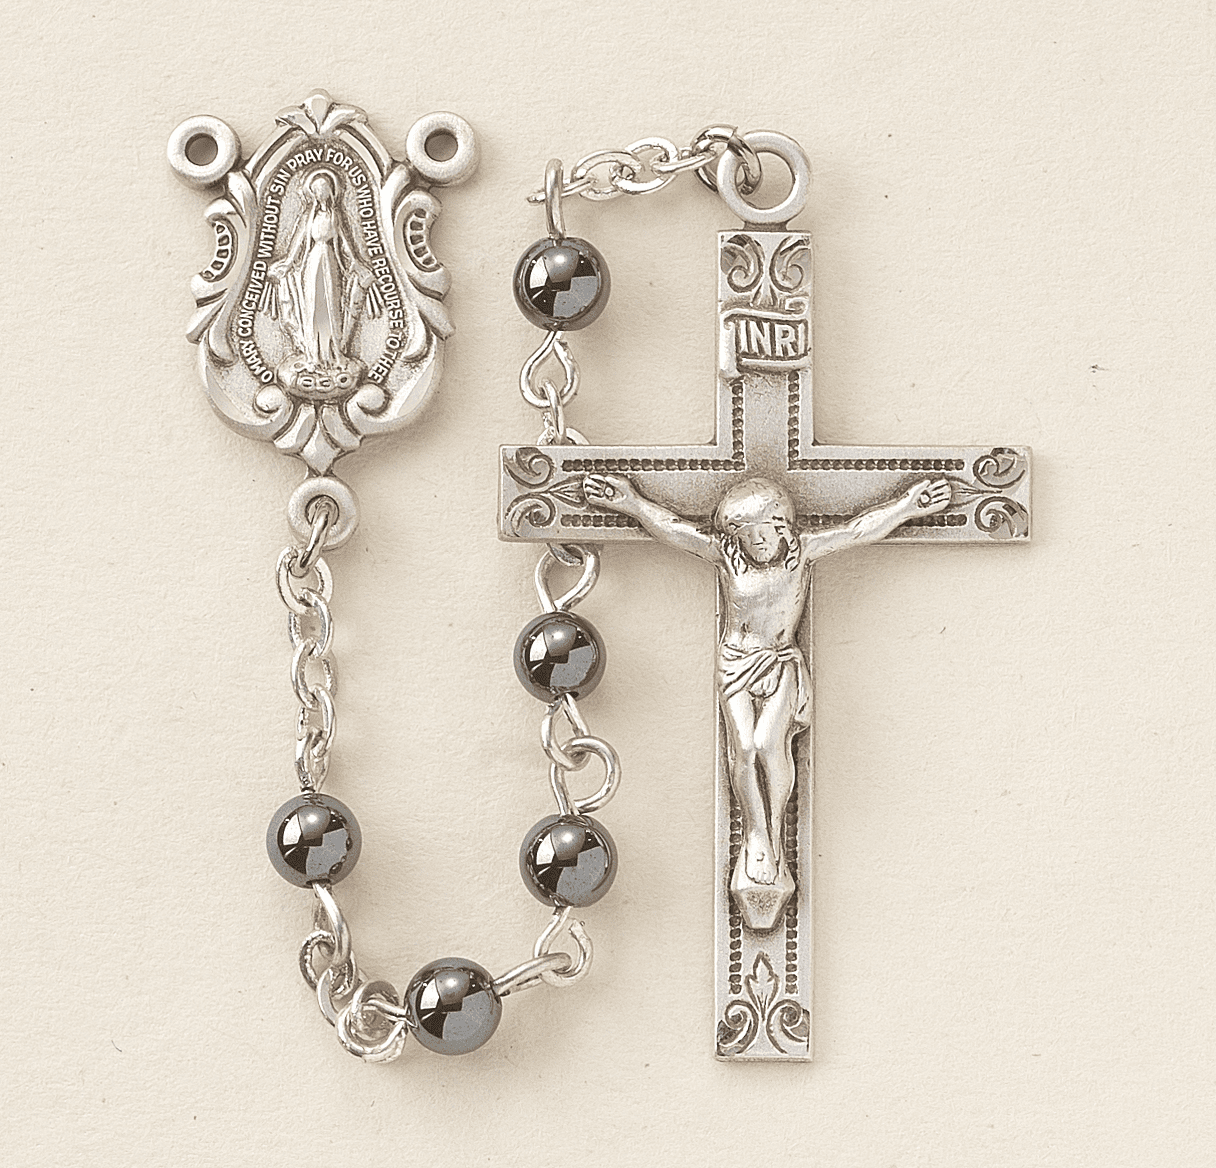 HMH Religious Hermatite Gemstone Sterling Silver Catholic Prayer Rosary